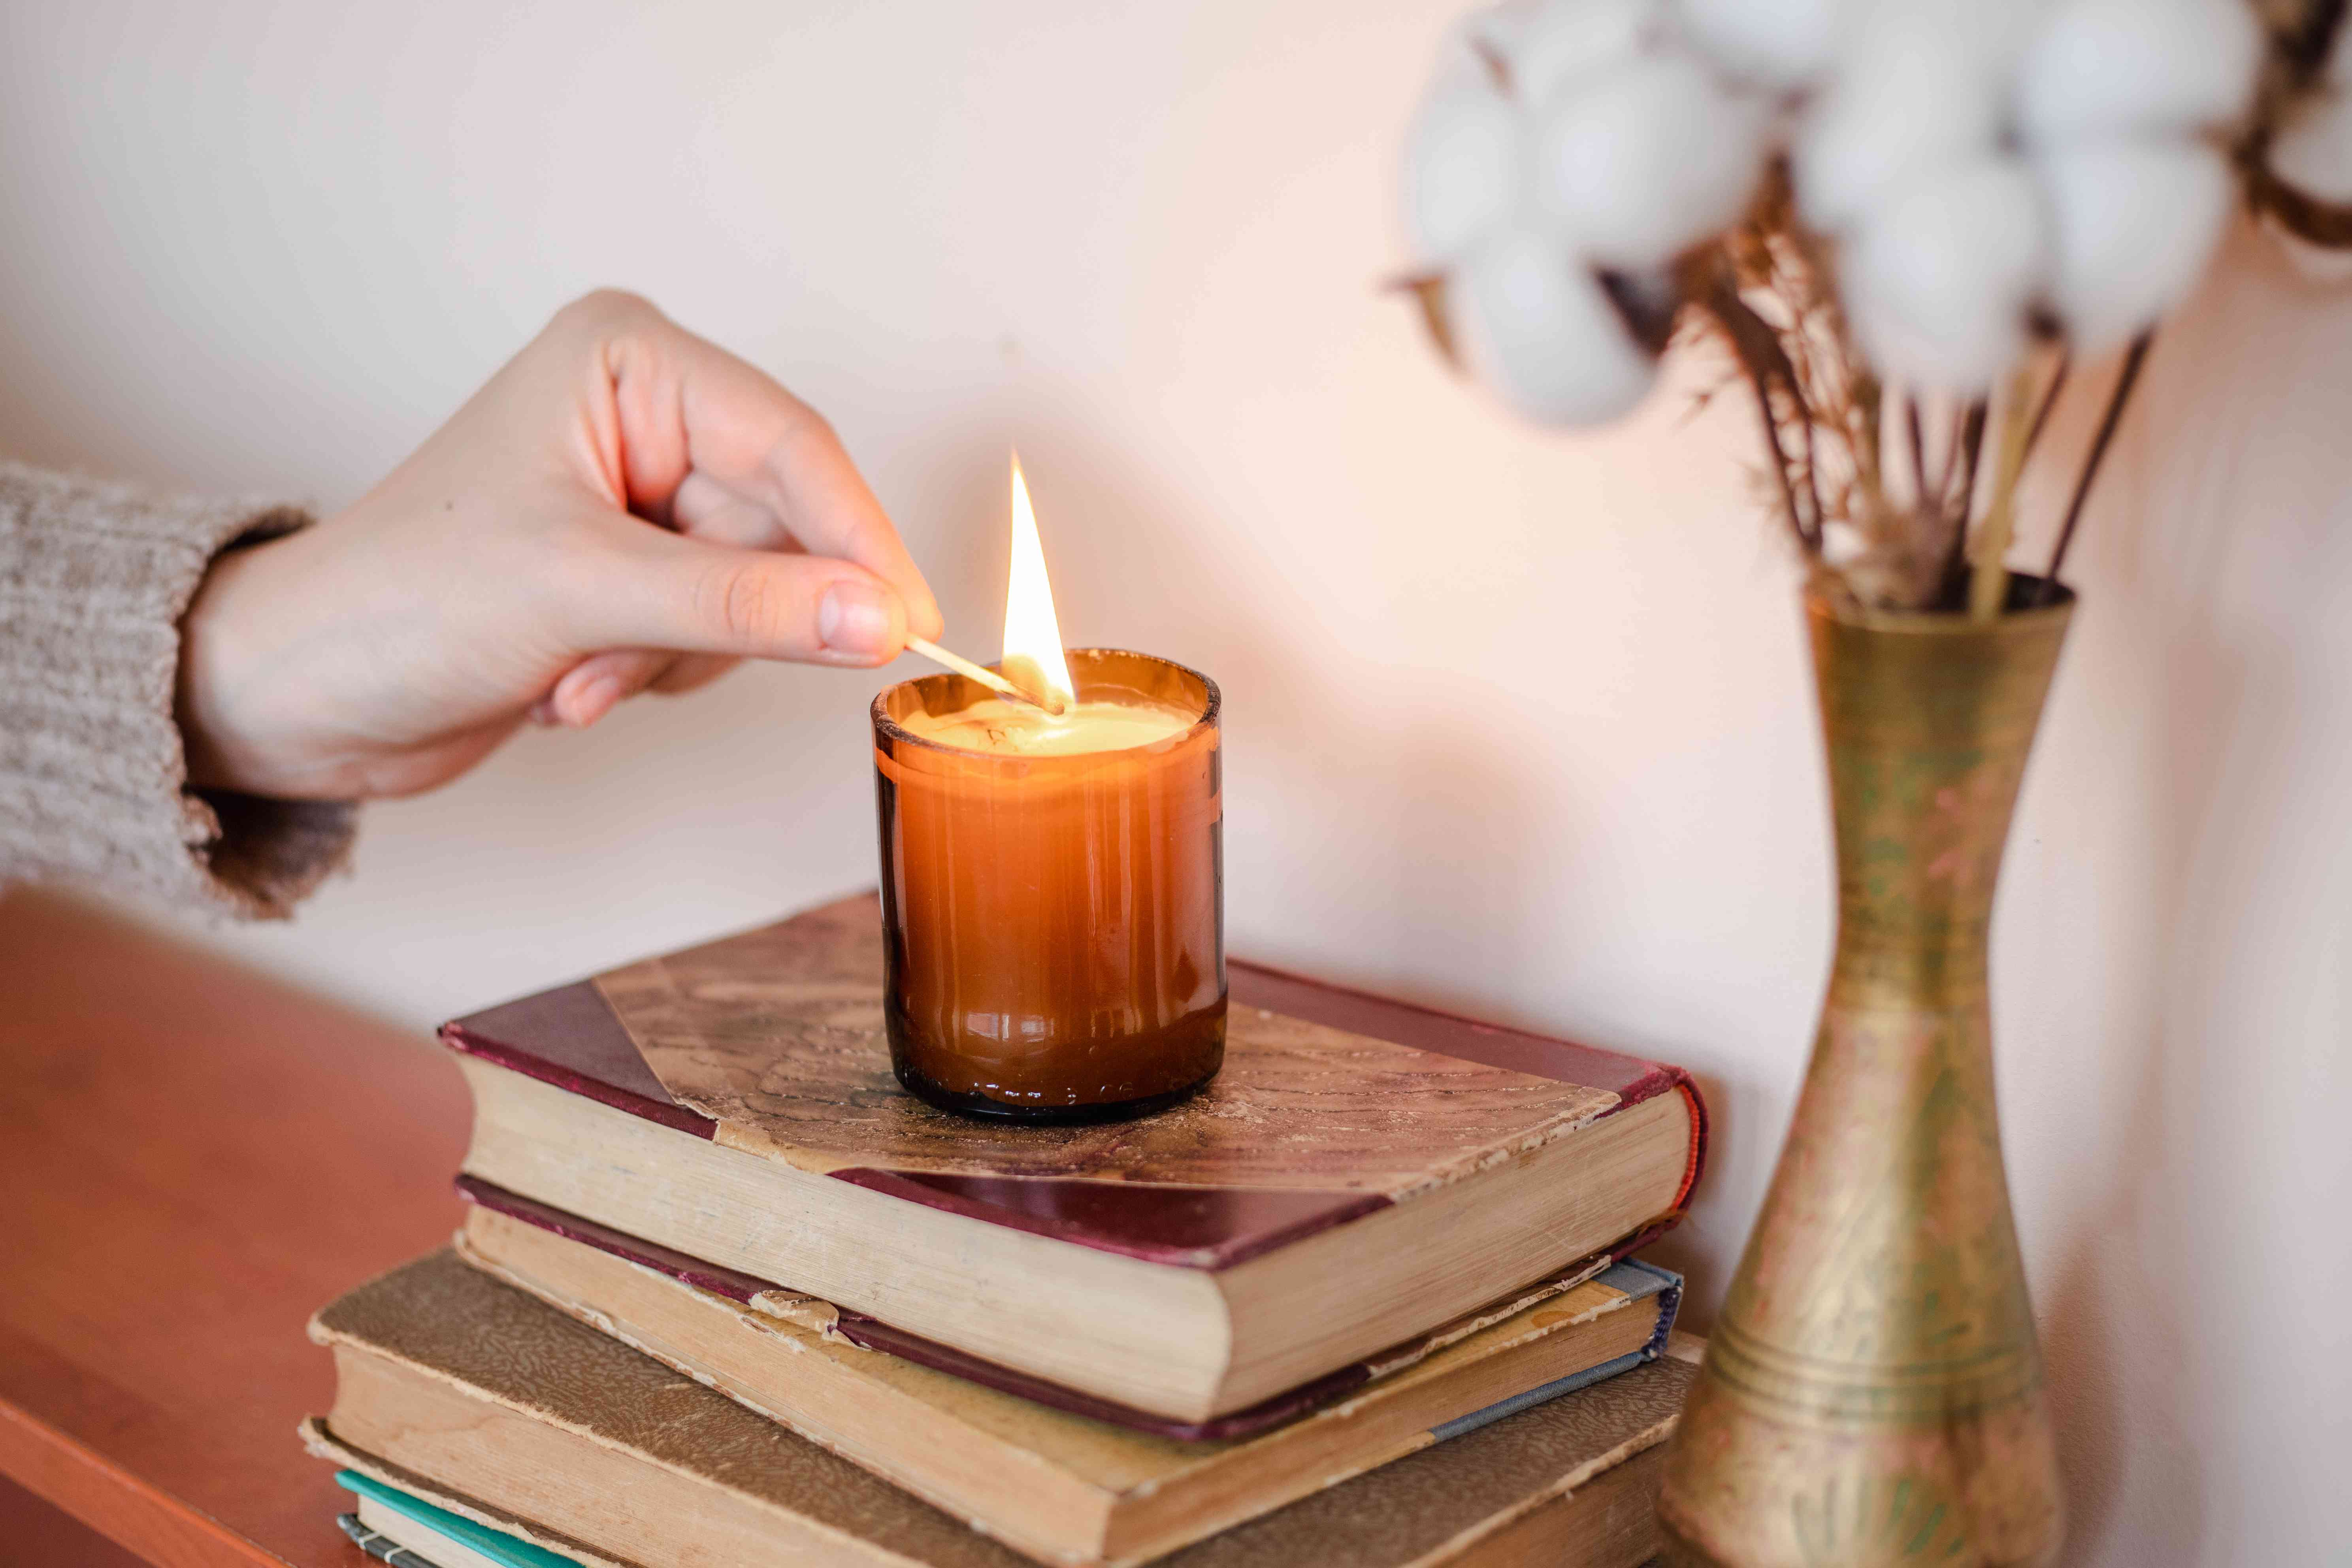 person lights candle in upcycled brown wine bottle cut into candle holder on top of books